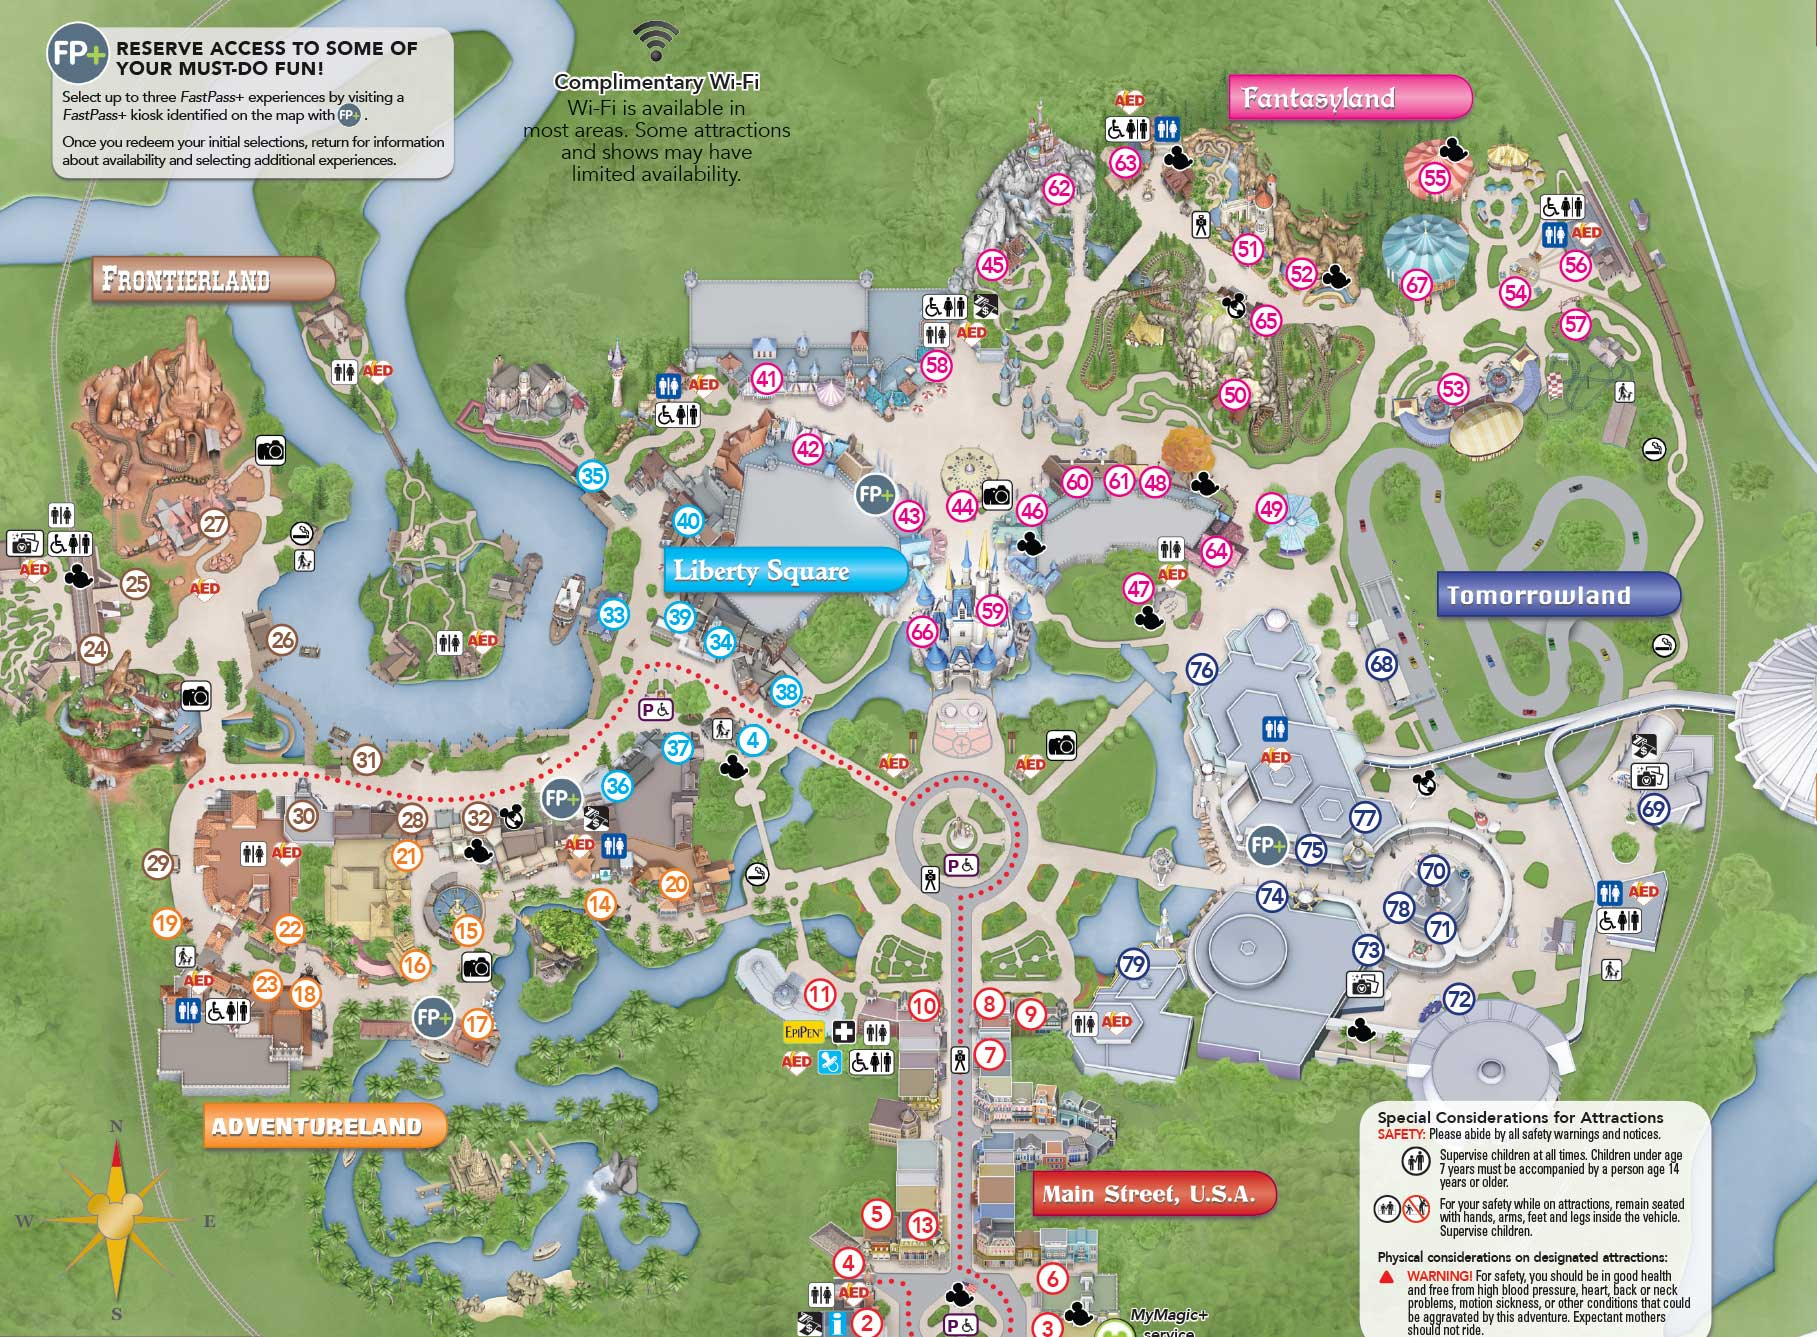 Magic Kingdom Map 2015 Orlando New Magic Kingdom Guide Map